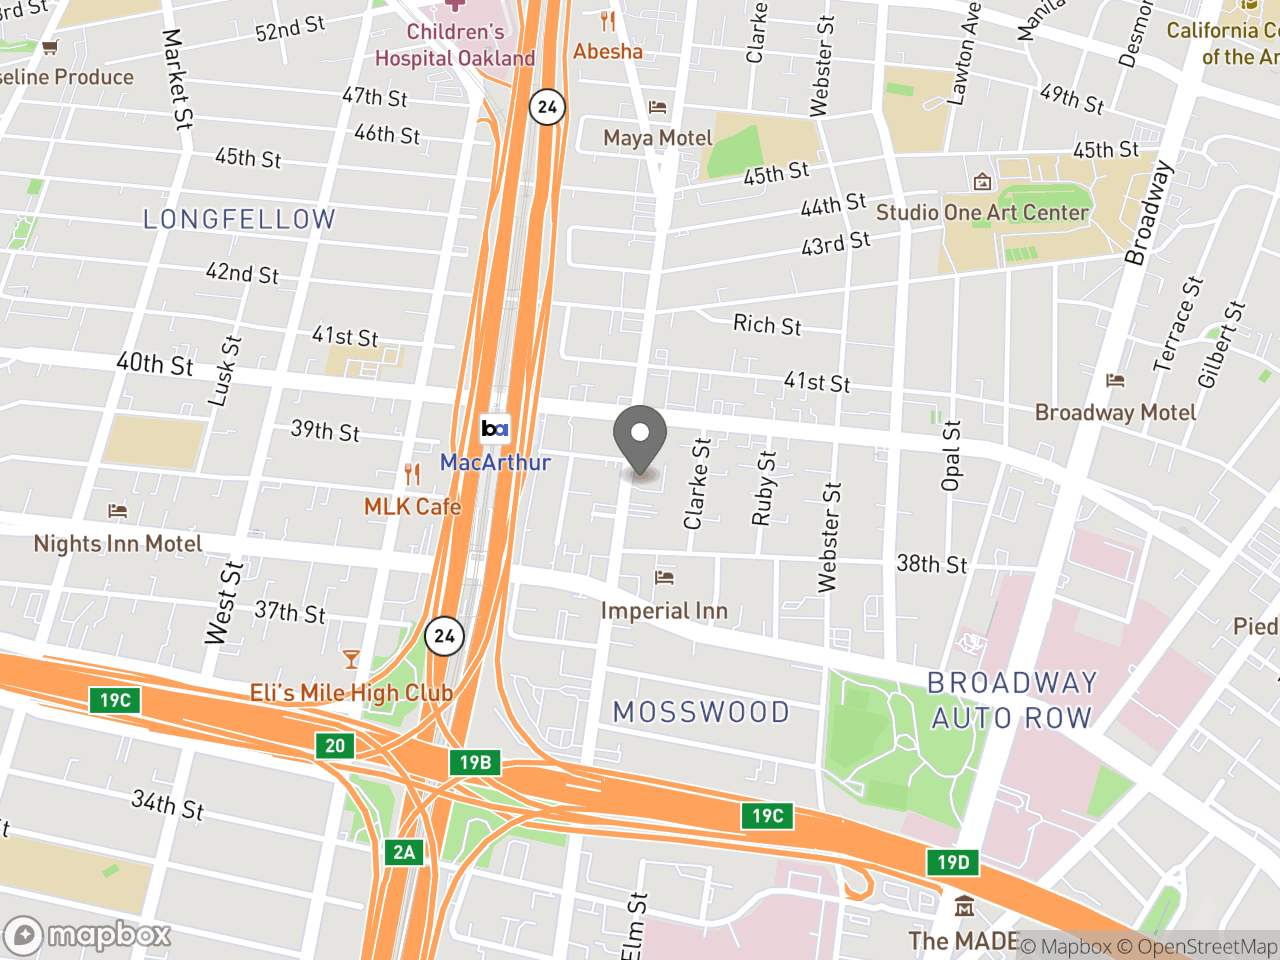 Map location for Public Budget Forum with Councilmember Dan Kalb, located at 3900 Telegraph Ave in Oakland, CA 94609